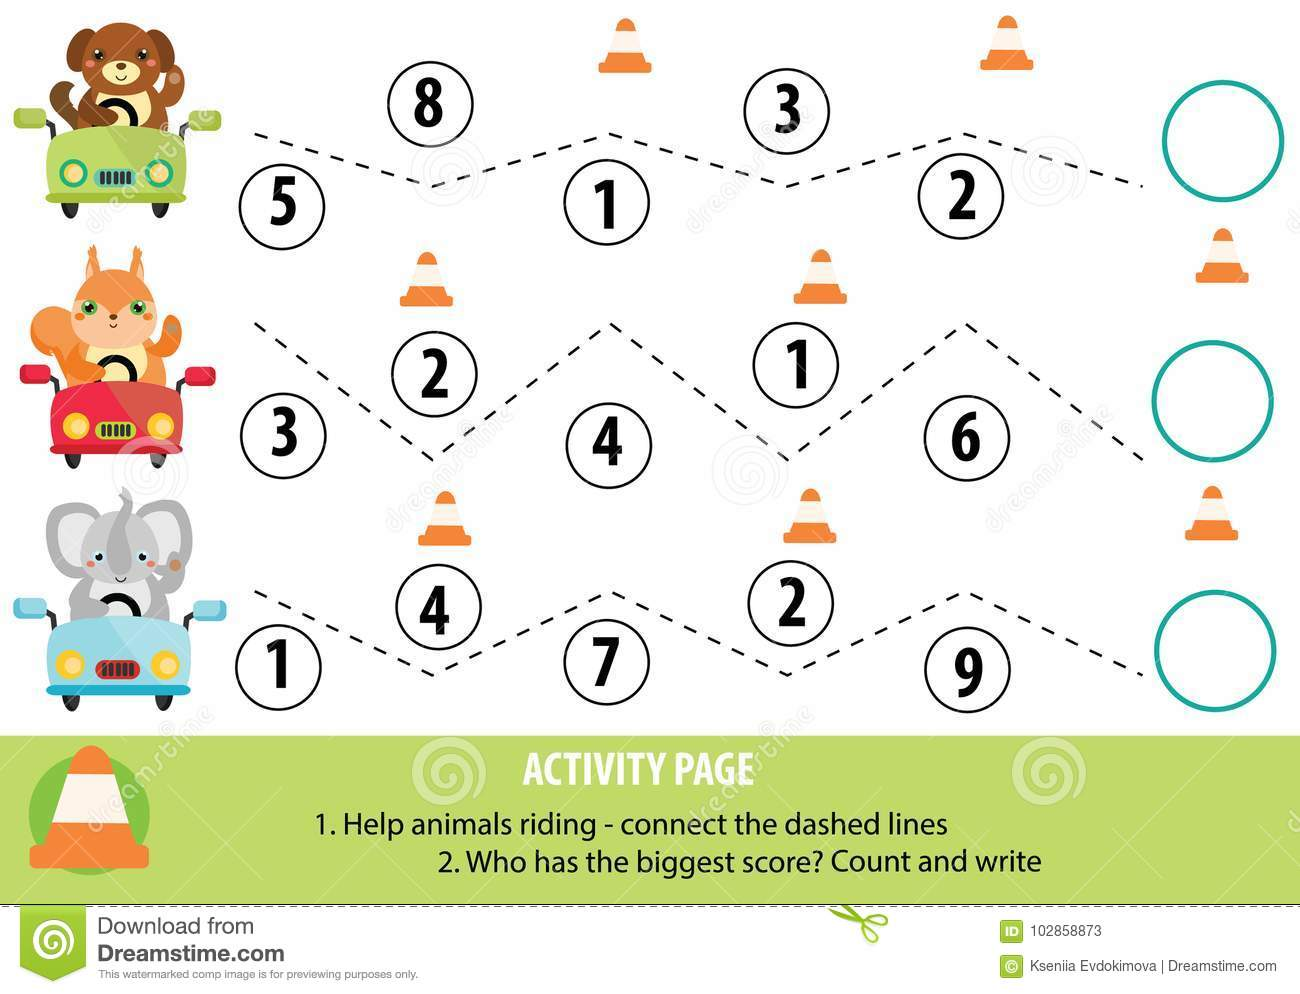 Worksheets Toddler Handwriting Worksheets activity page for children handwriting practice and mathematics download stock vector illustration of